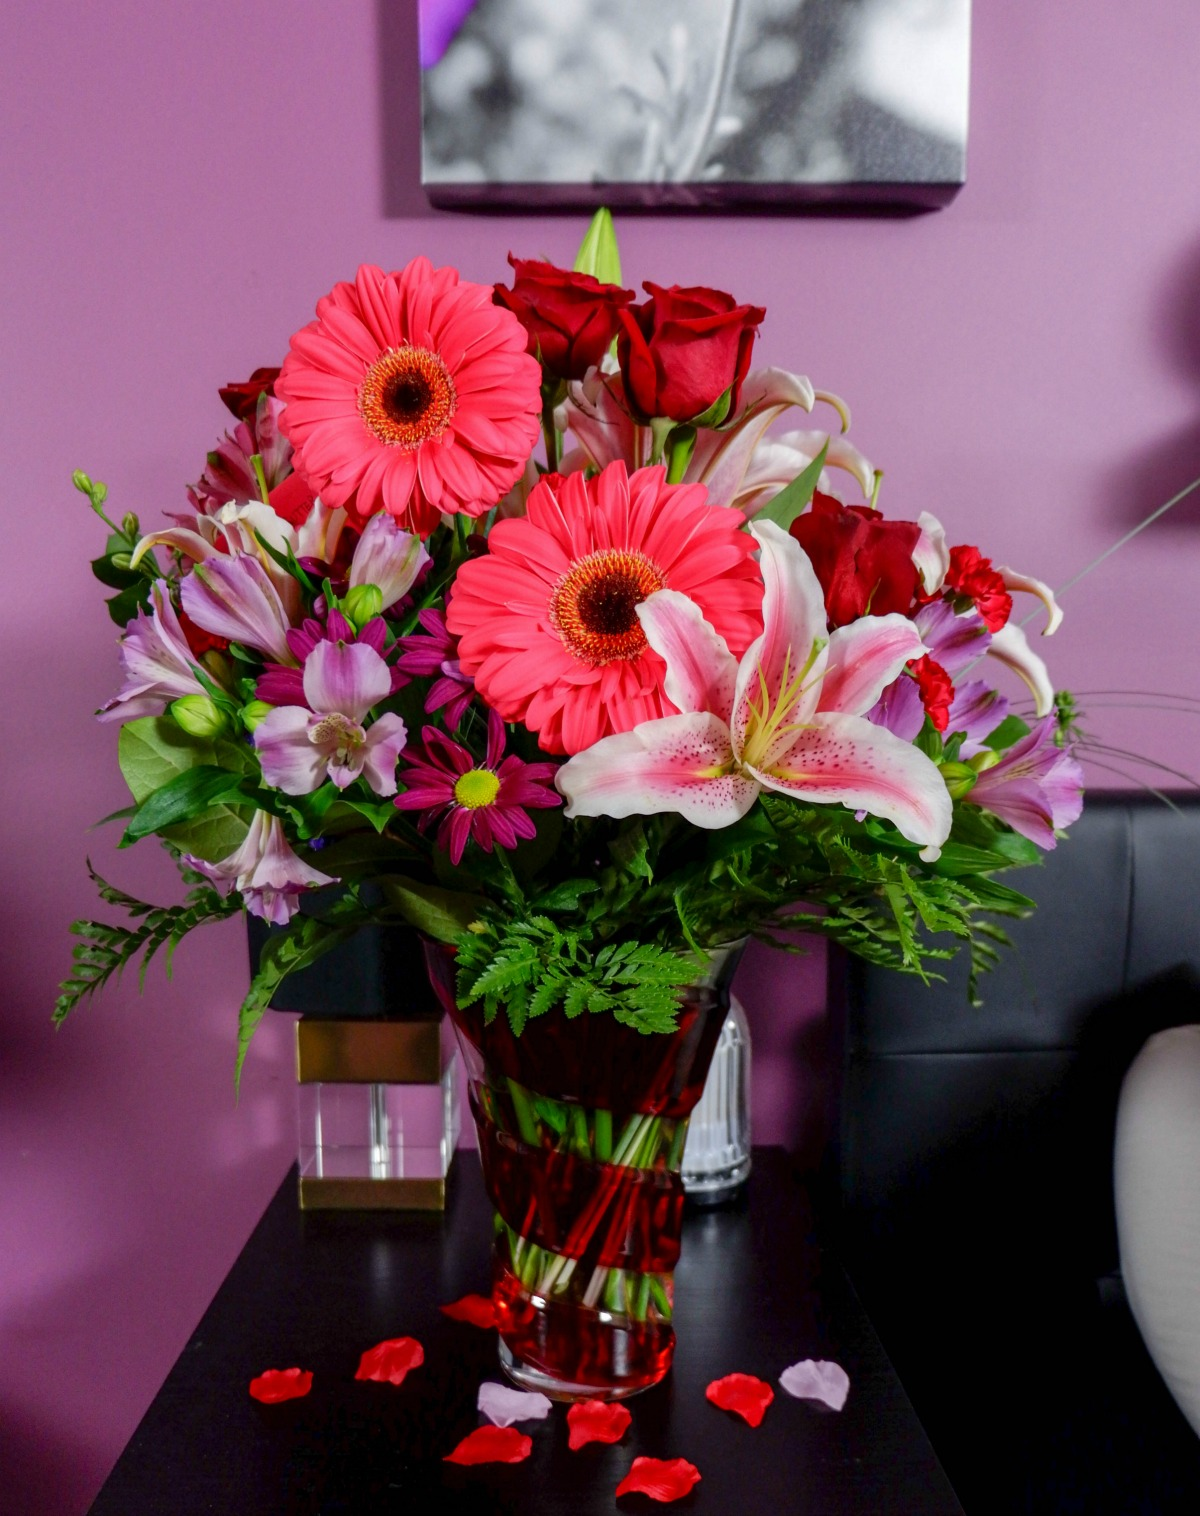 Celebrate With Beautiful Valentines Flowers From Teleflora